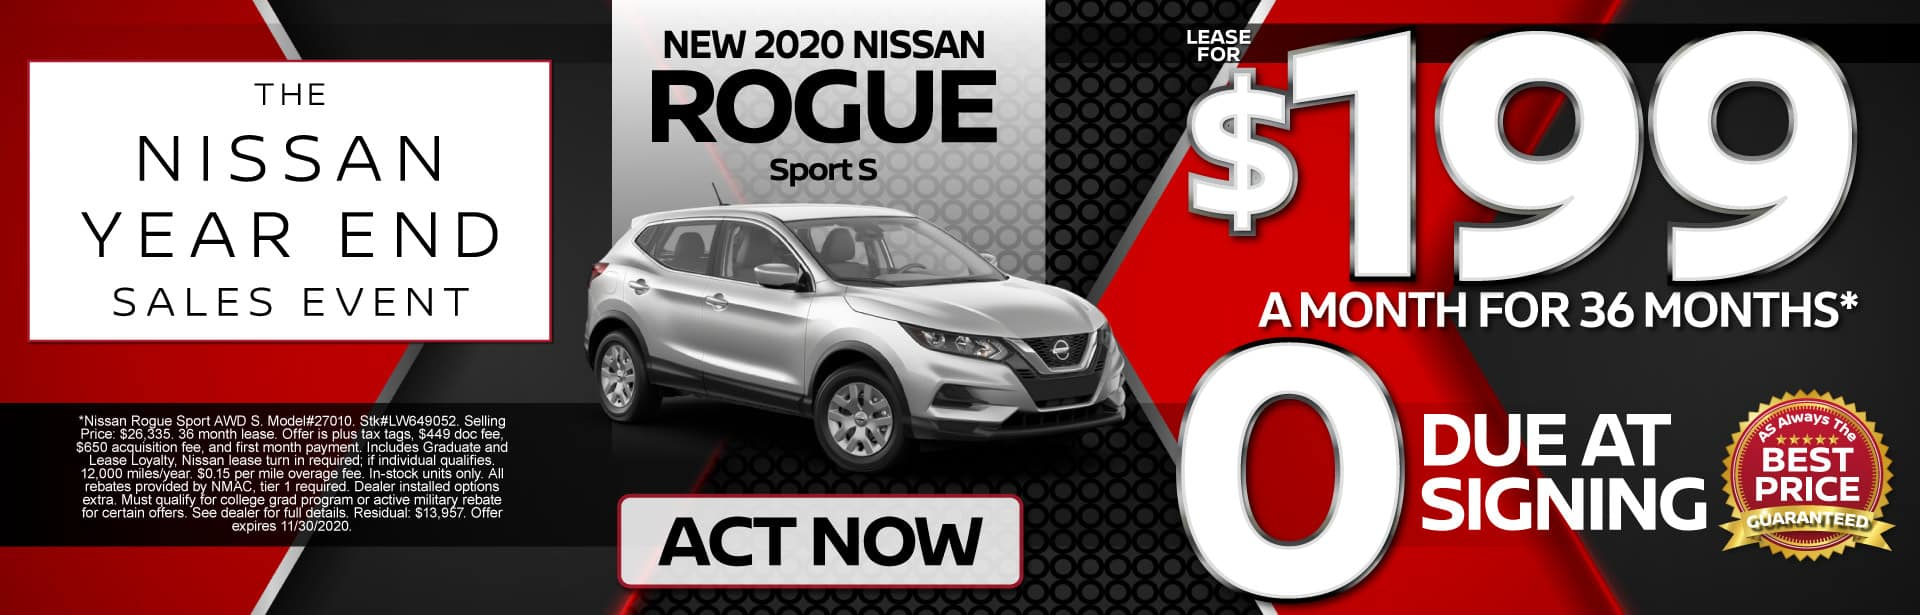 New 2020 Rogue Sport S Lease for $199 a month for 36 months | Act Now